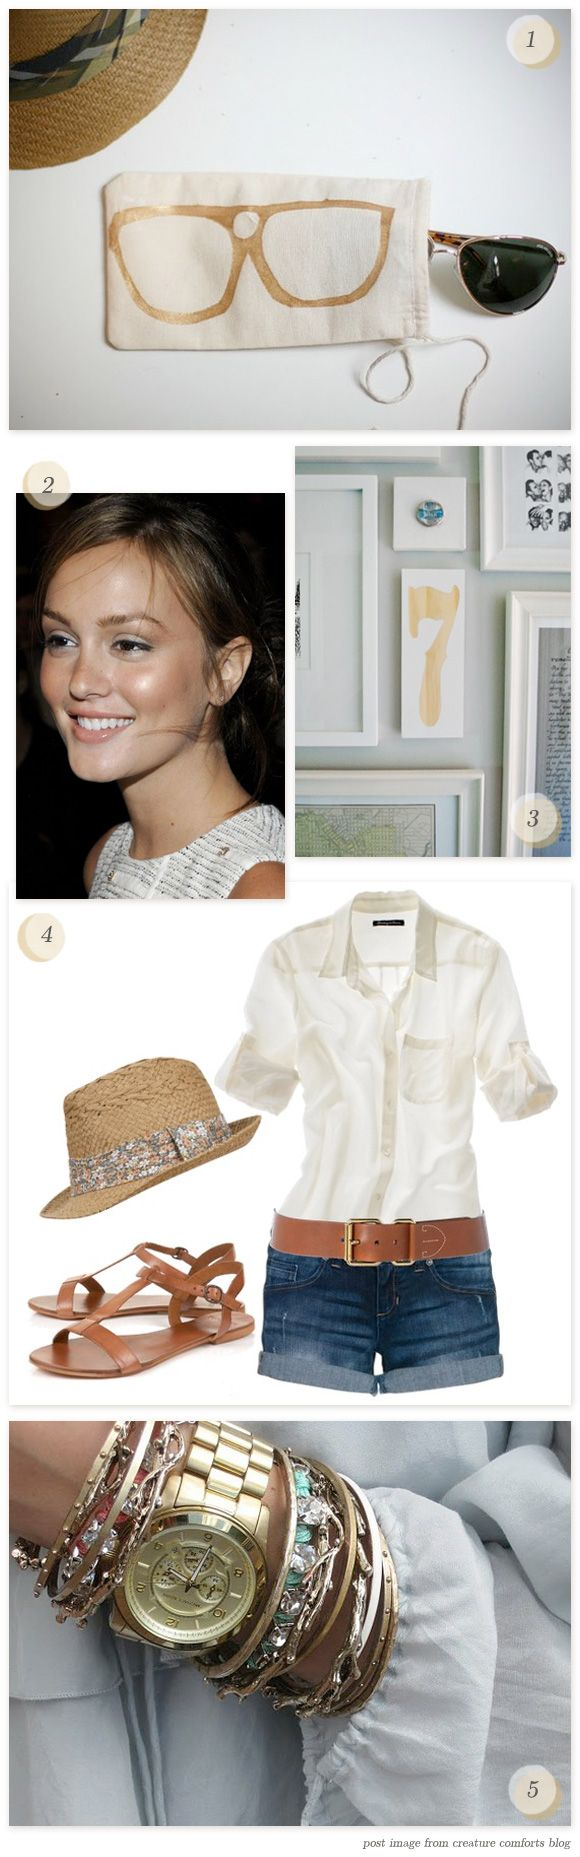 summerIdeas My Style Pinboard, Shorts Outfit, Outfit Ideas, Inspiration Boards, Summer Outfits, Denim Shorts, Express Inspiration, Girls Outfit, Art Outfit